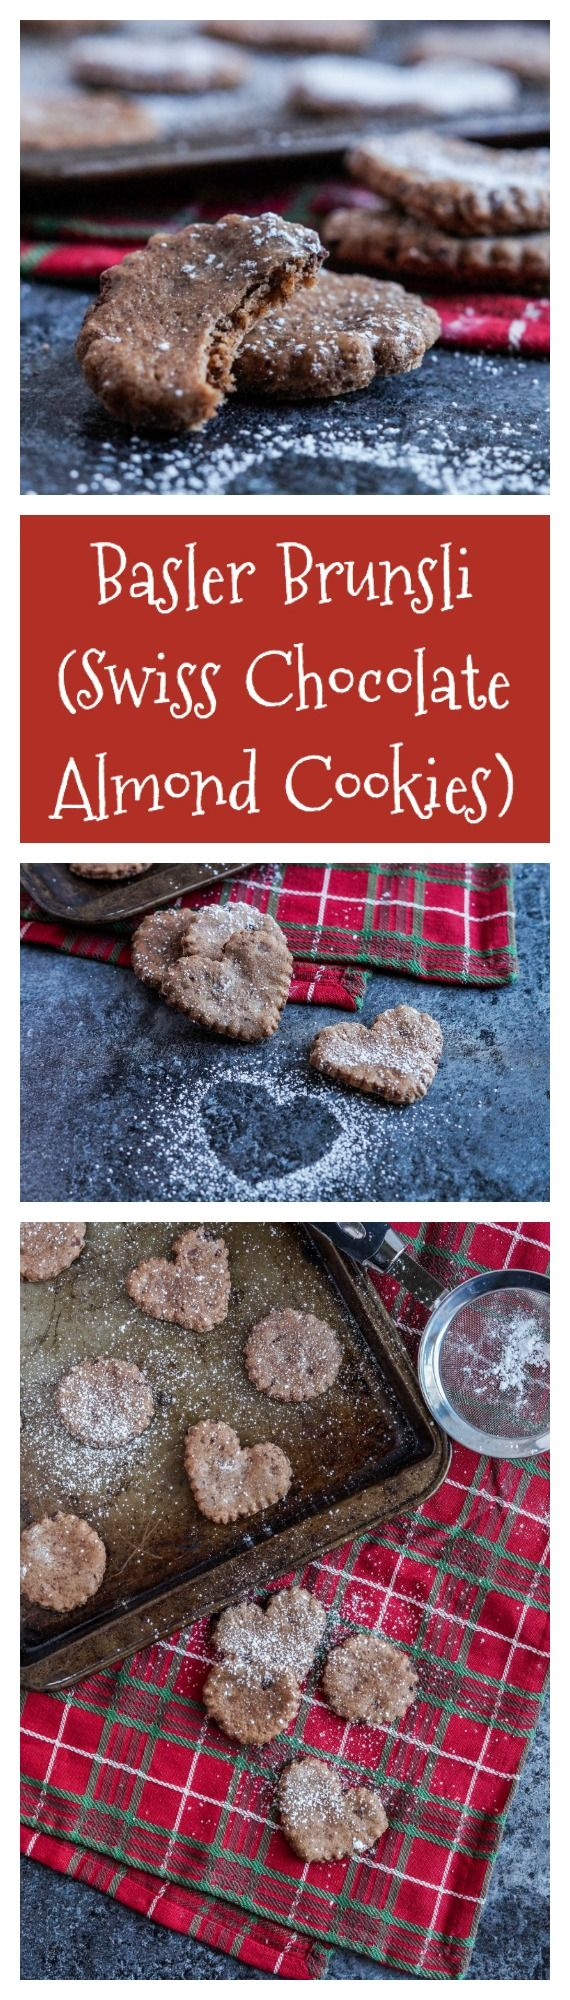 Basler Brunsli (Swiss Chocolate Almond Cookies) for #IntnlCookies  #glutenfree #cookie #cookies #basler #brunsli #swiss #switzerland #chocolate #almond #christmas #winter (bake sale cookies heavens)